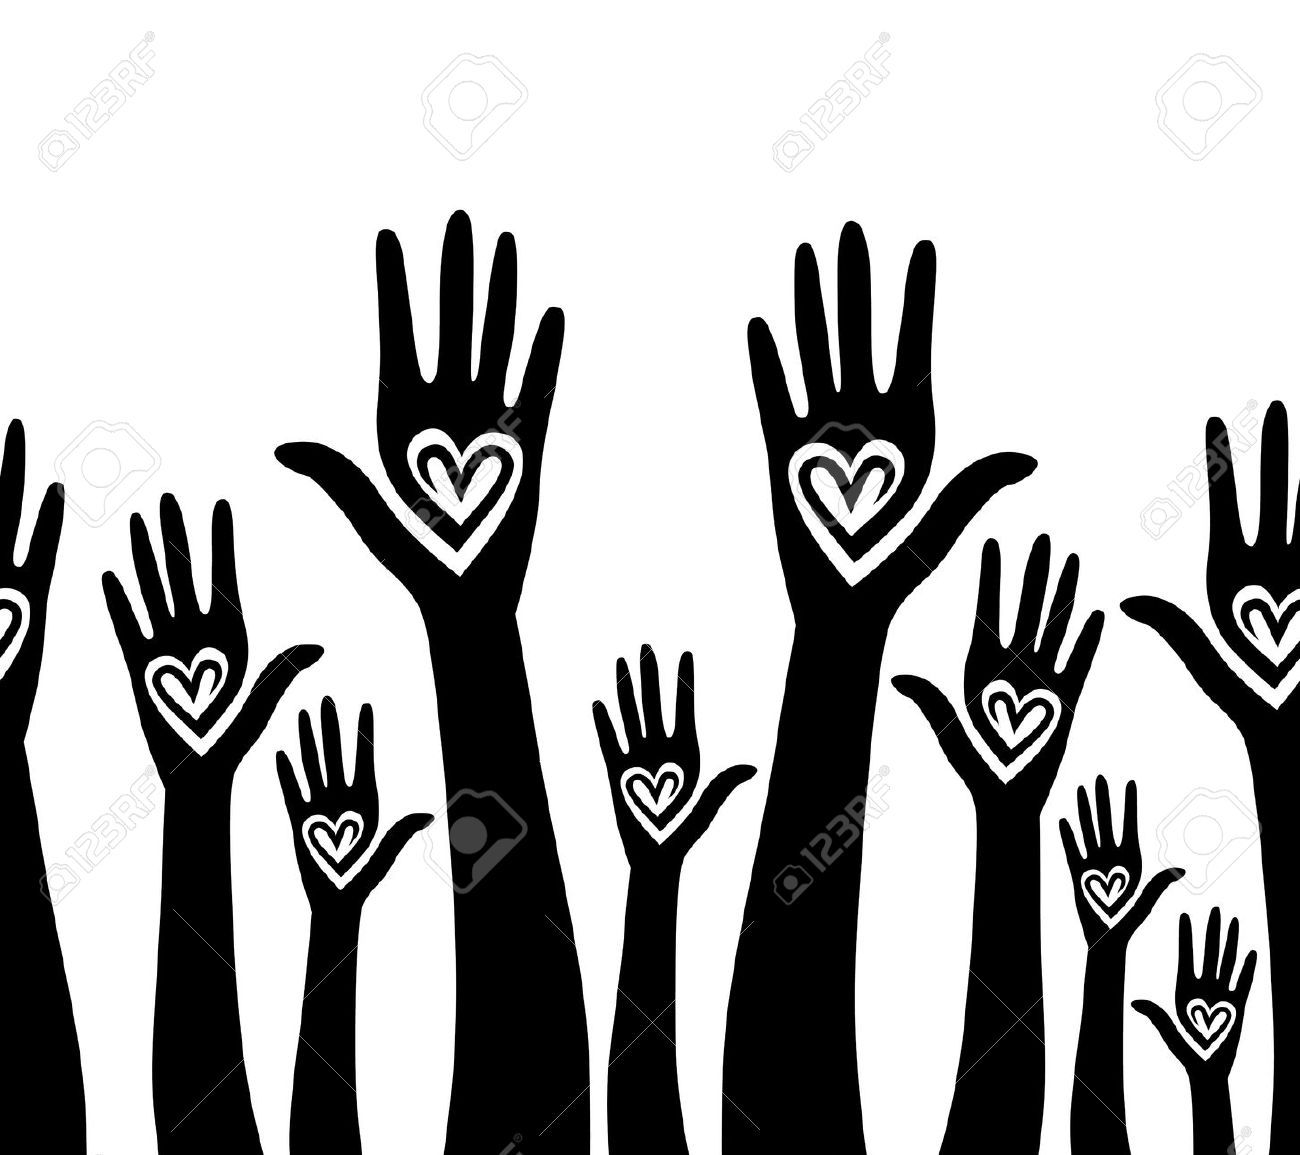 medium resolution of colorful hands with hearts over white background royalty free hand clipart seamless